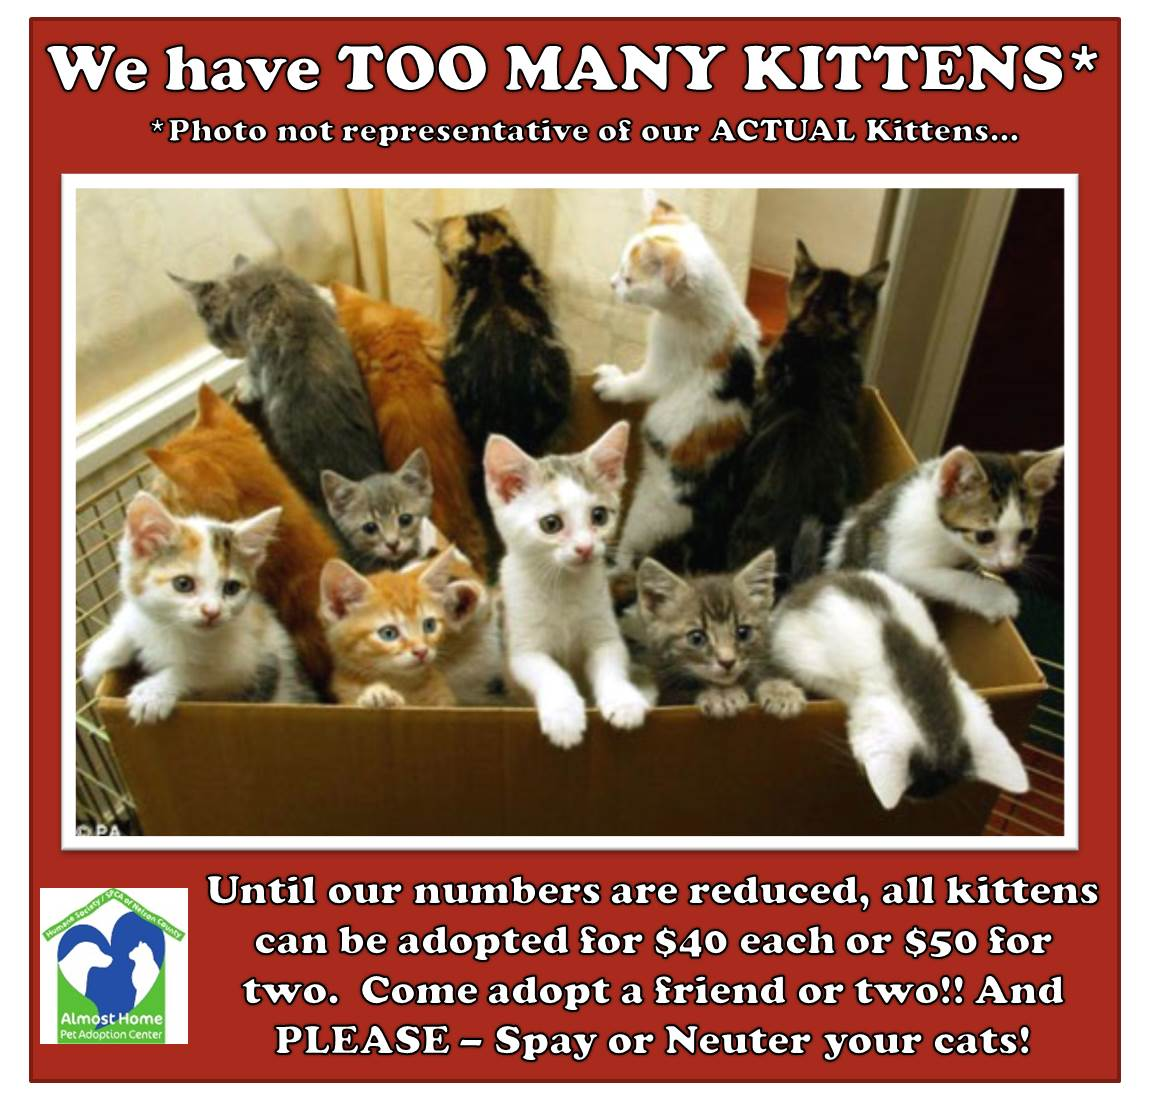 2014-09-11 Too Many Kittens